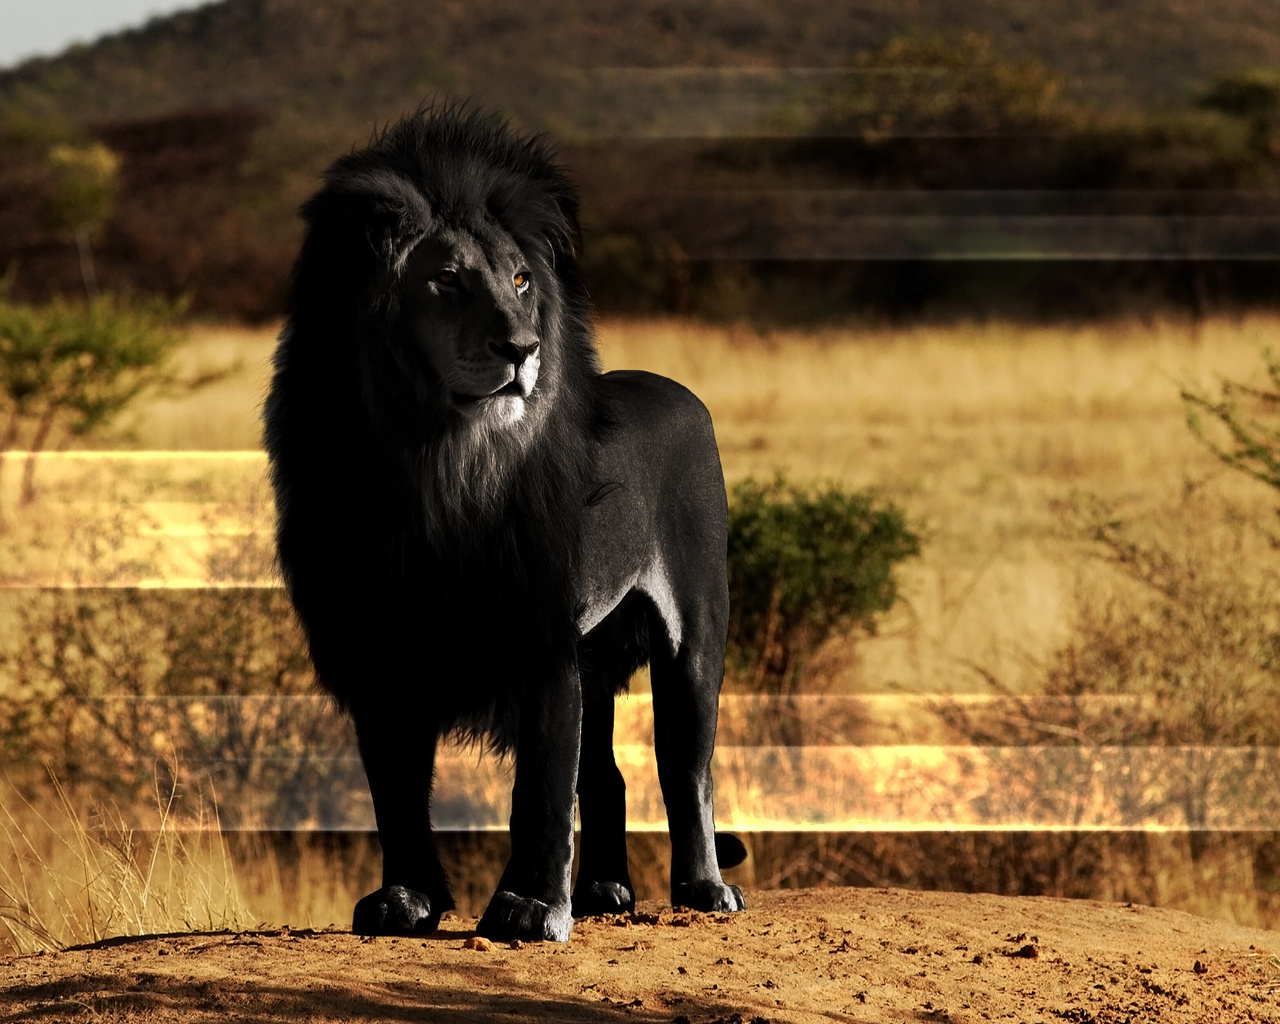 15351 download wallpaper Animals, Art, Lions screensavers and pictures for free